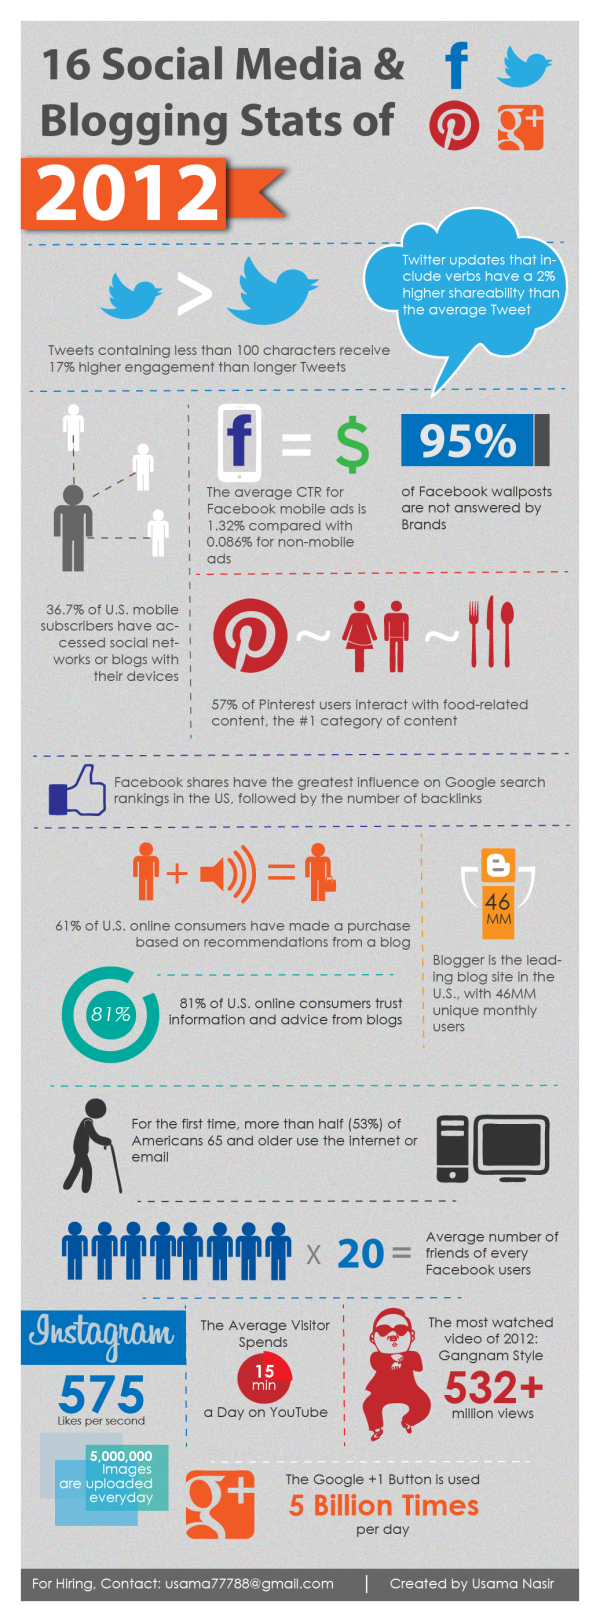 Social Media and Blogging Stats   2012 resized 600